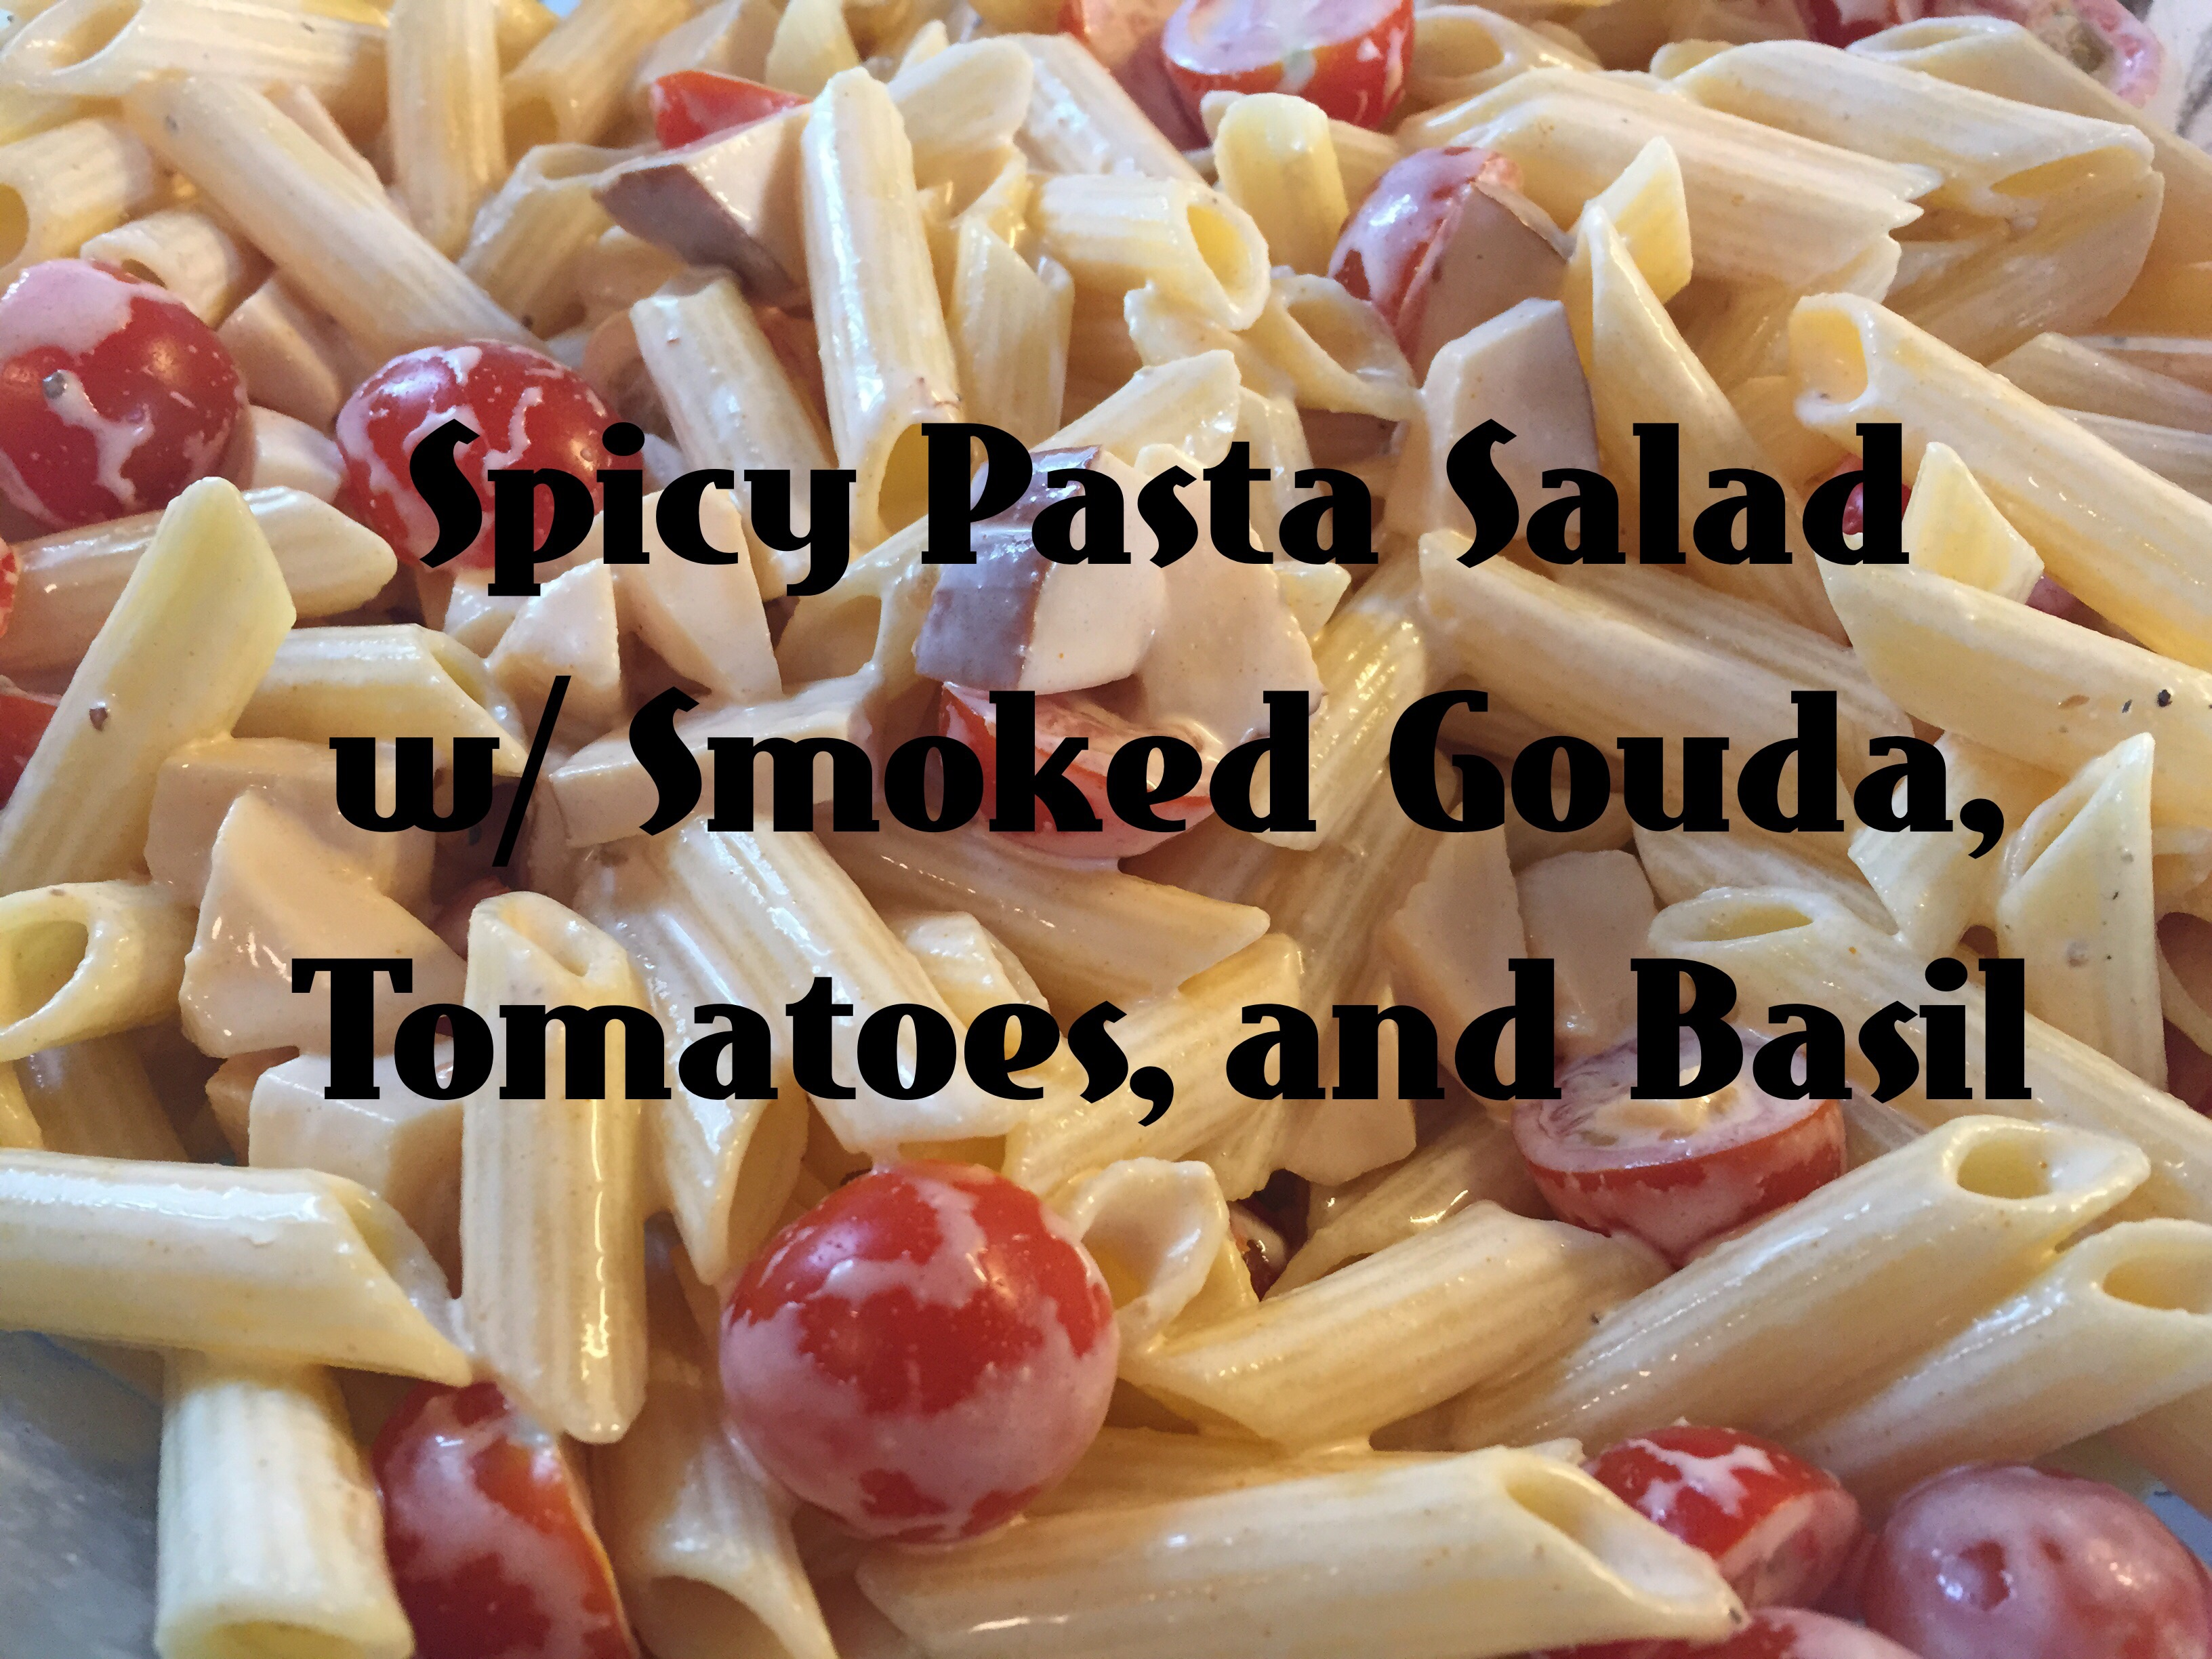 Spicy Pasta Salad w/ Smoked Gouda, Tomatoes, and Basil ...